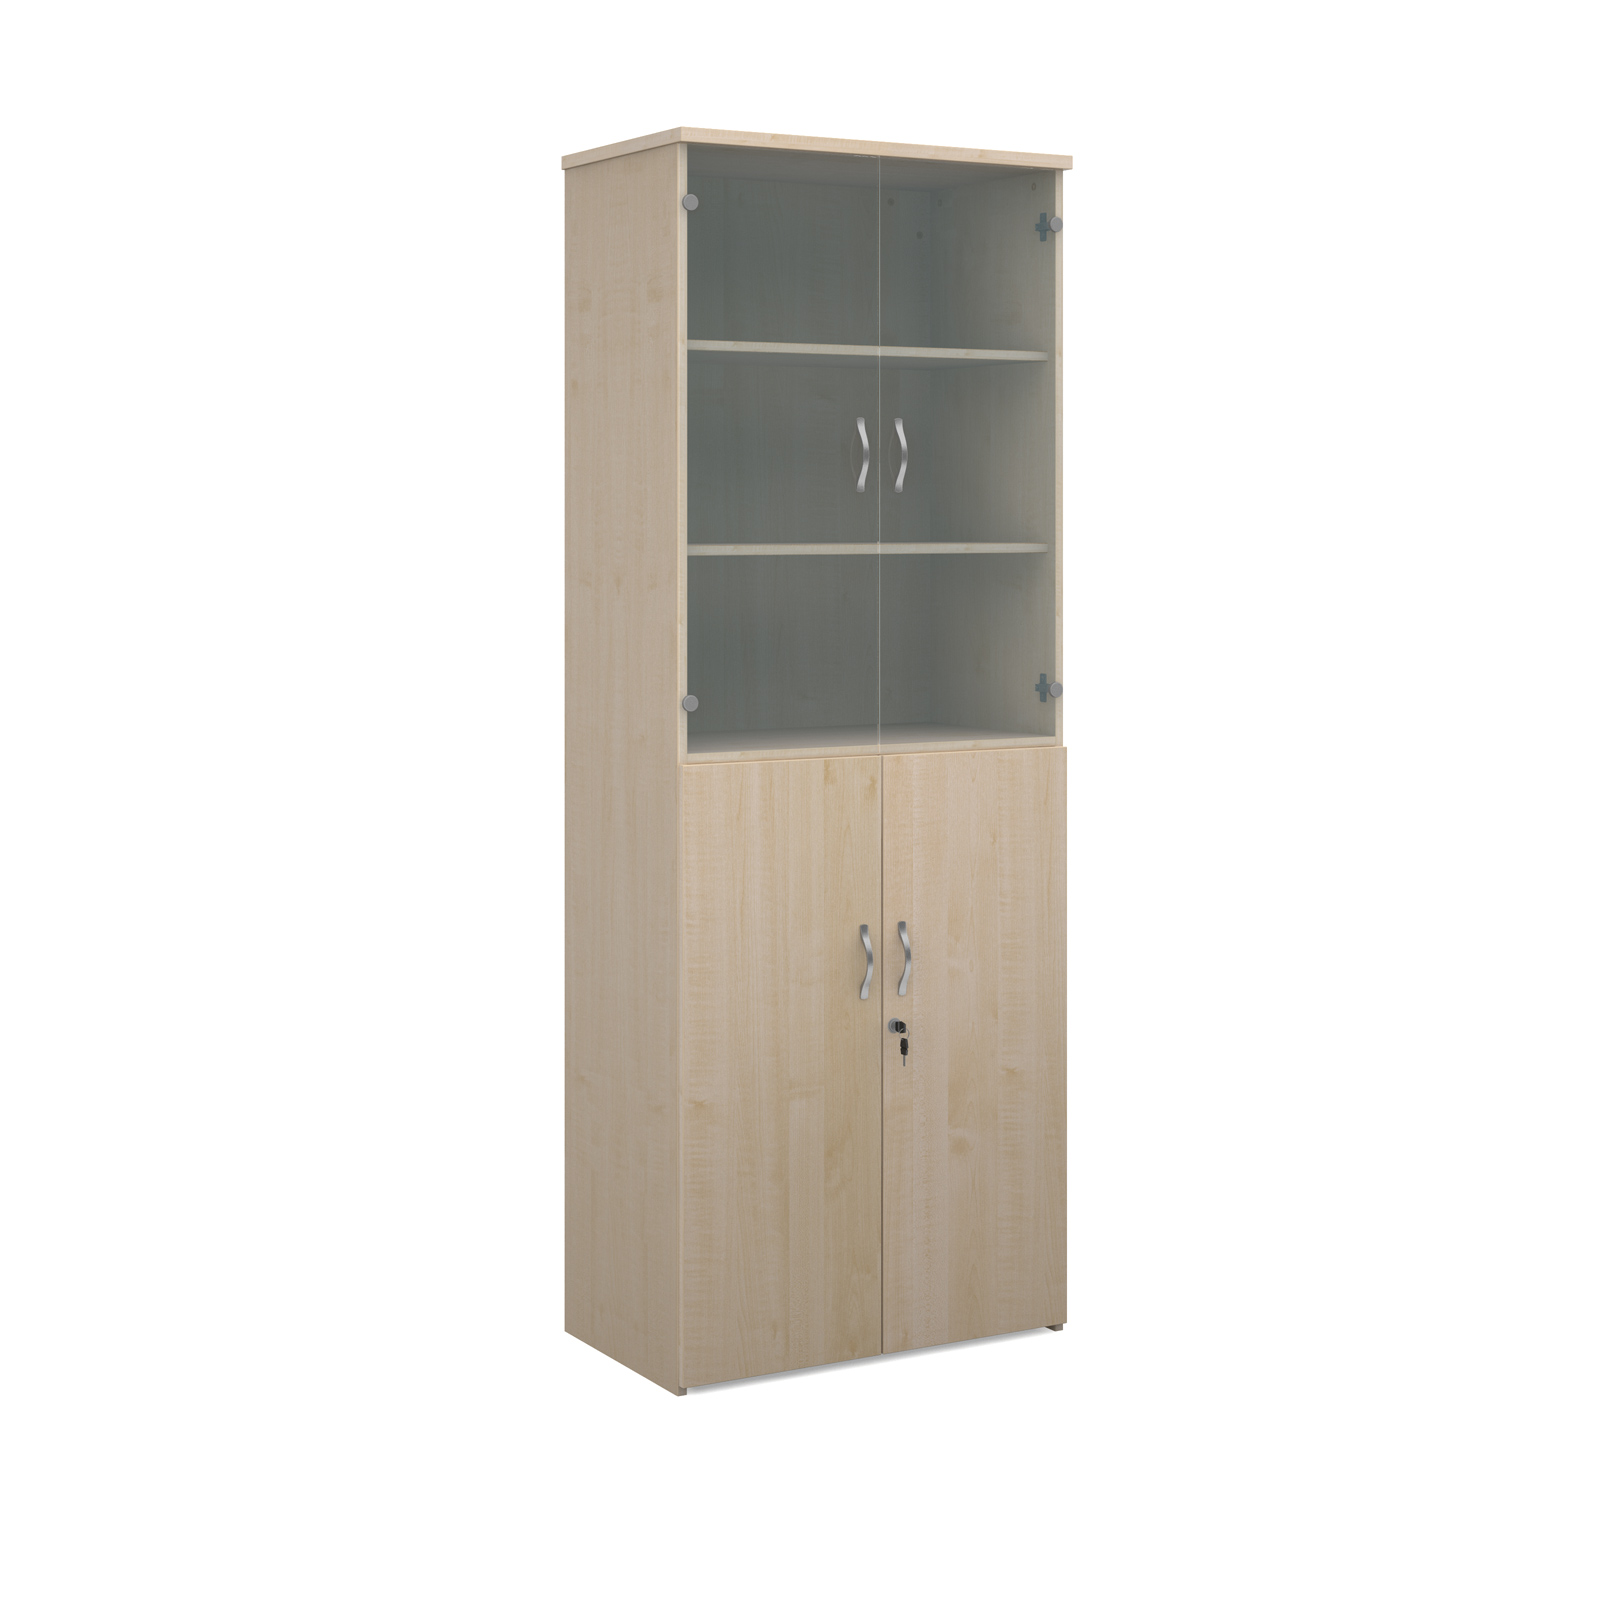 2140mm high combination unit with glass and wood doors in maple